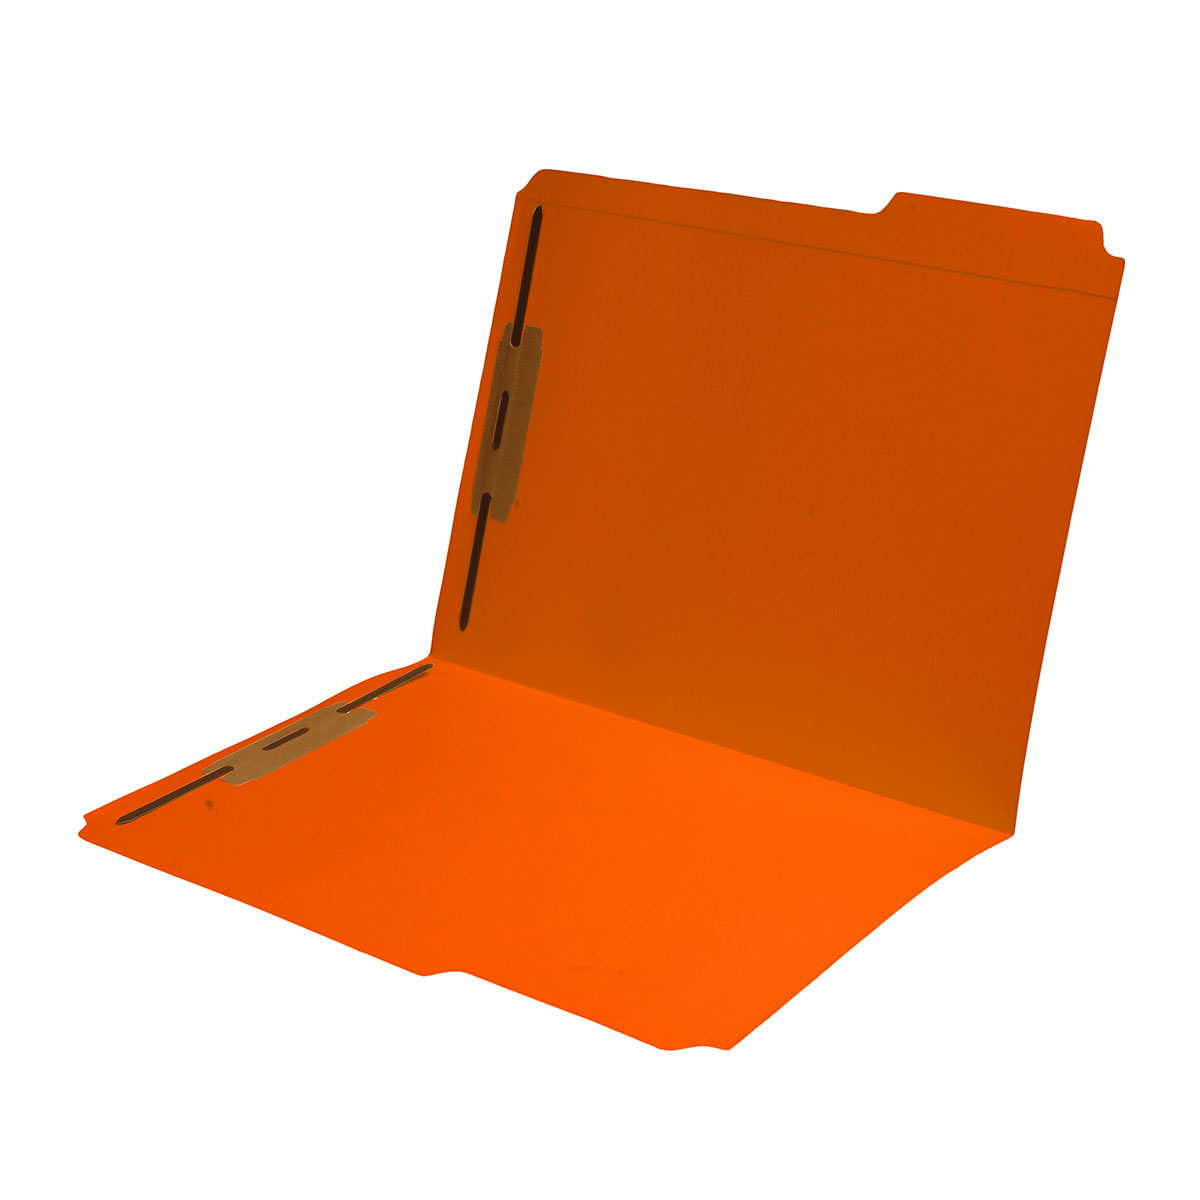 S-9042-ORG - 11 pt Orange Folders, 1/3 Cut Reinforced Top Tab - Assorted, Letter Size, Fastener Pos #1 and #3 (Box of 50)